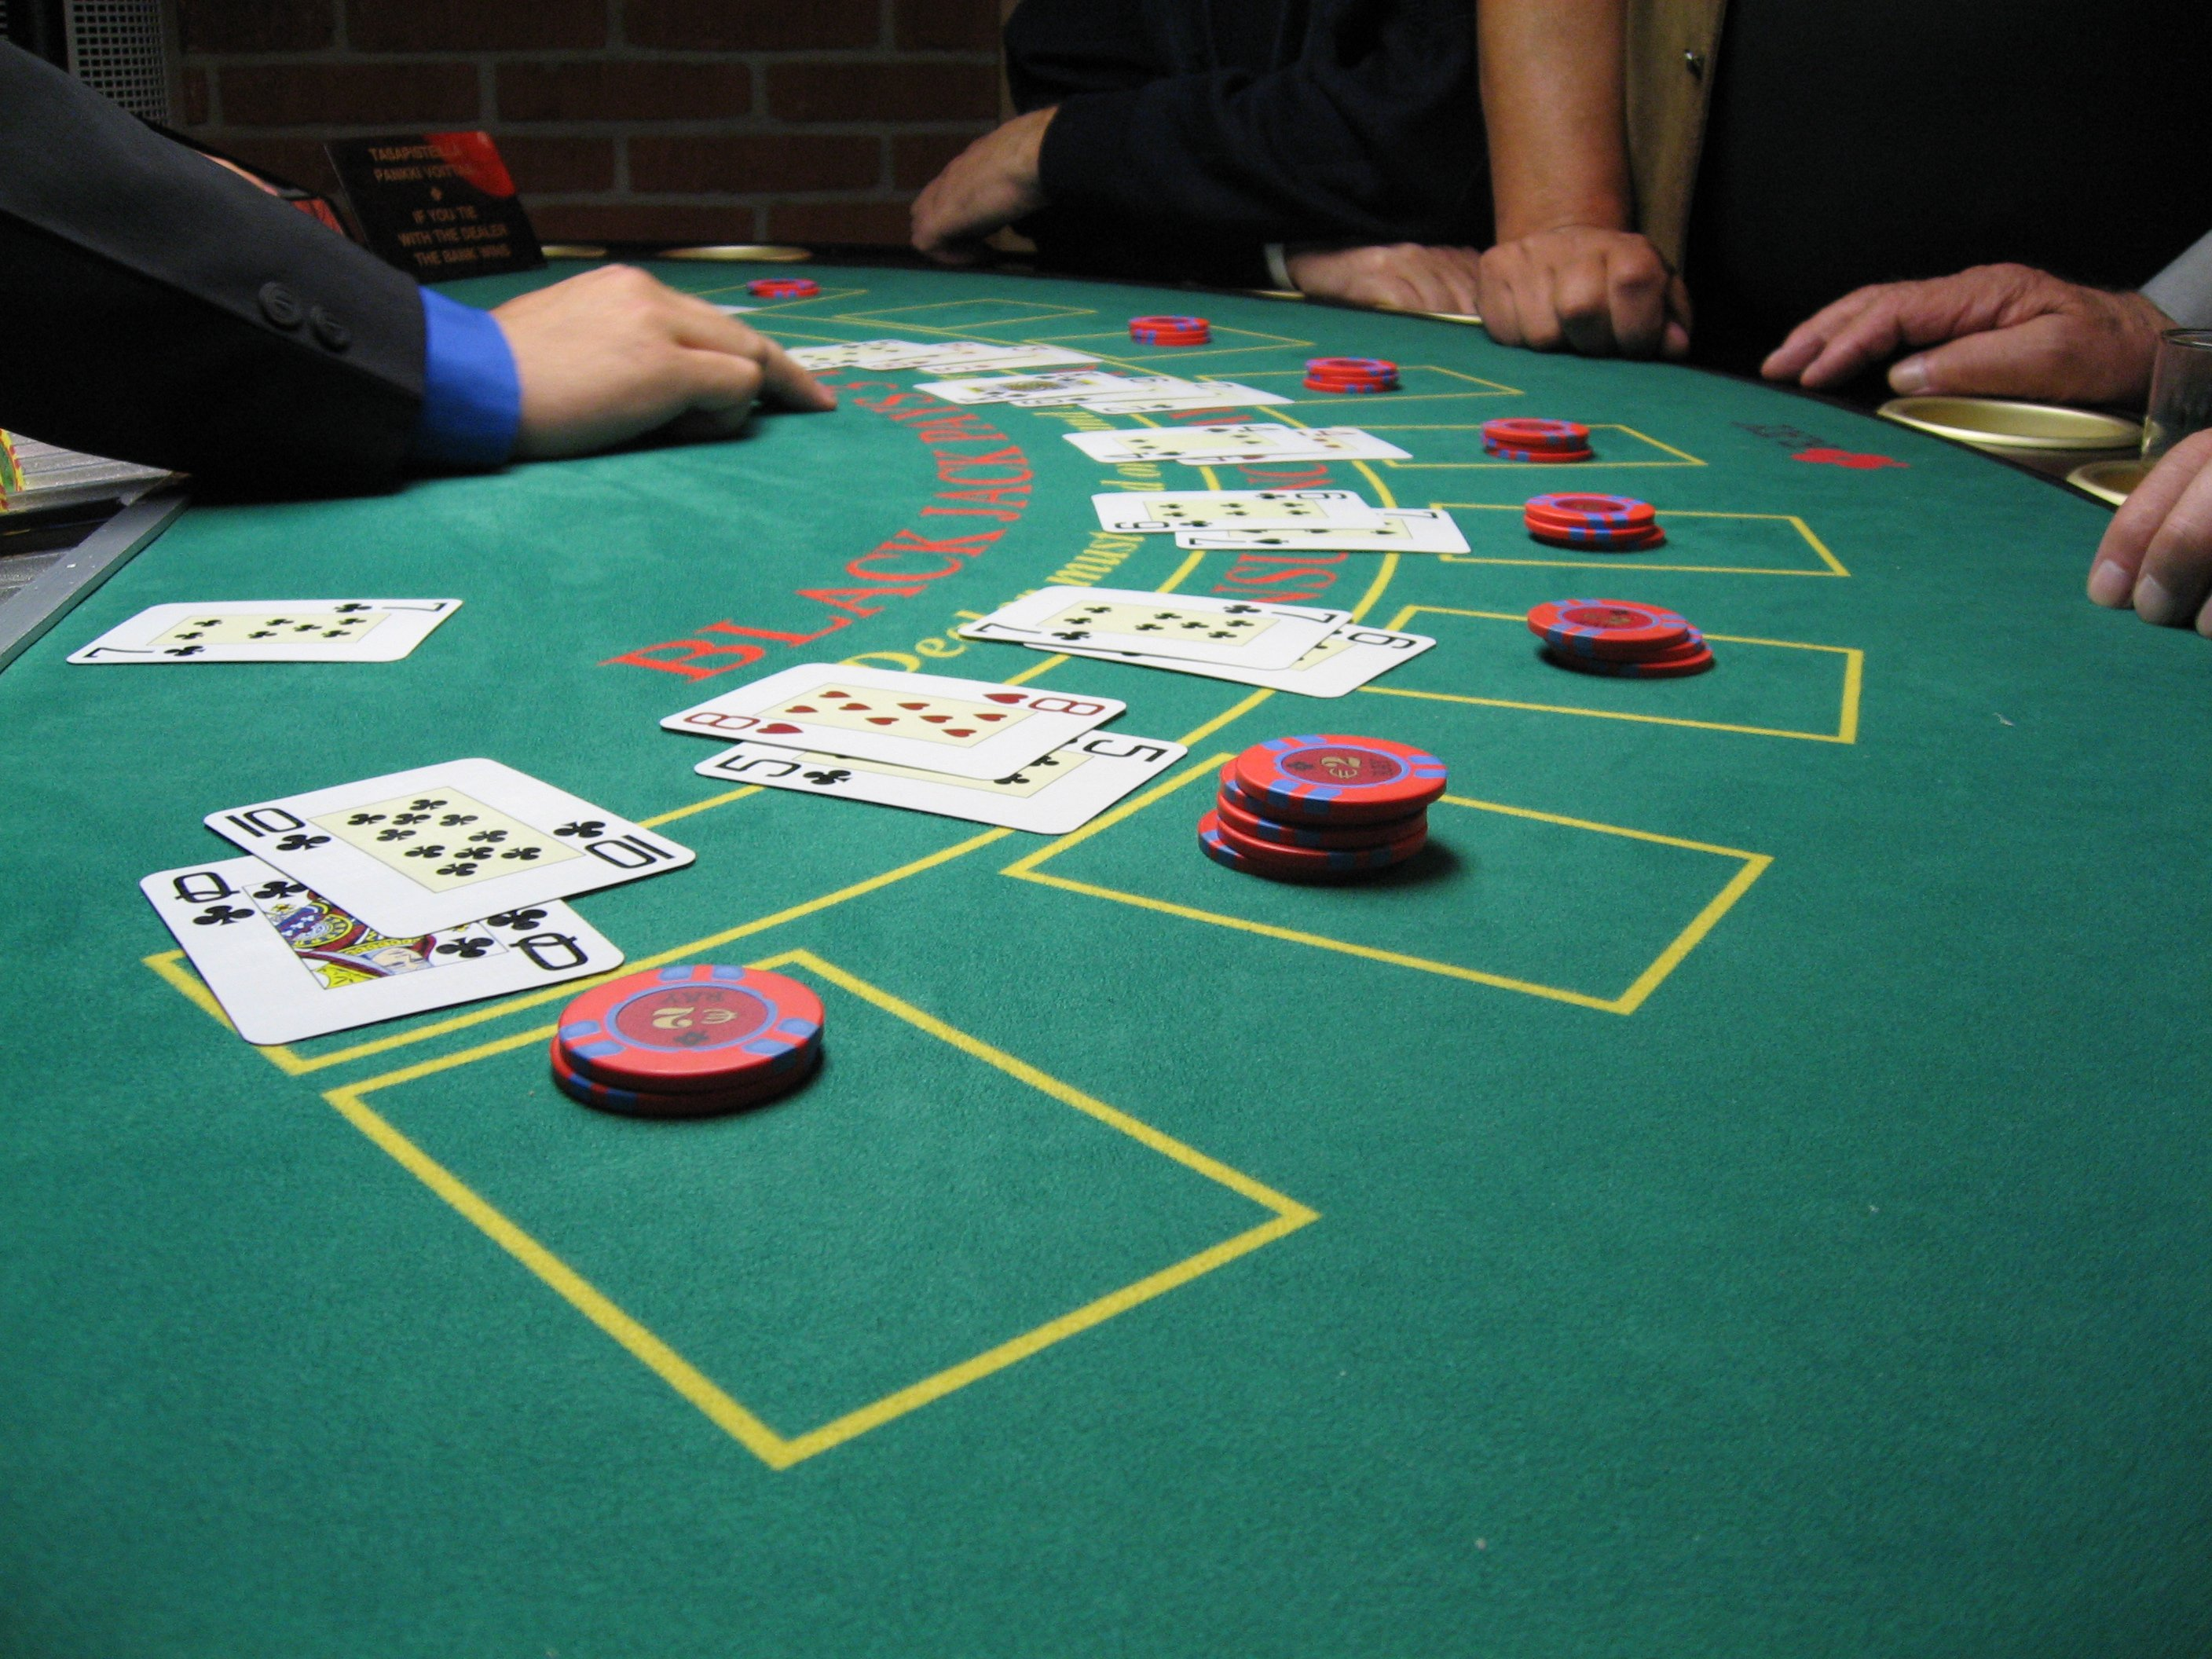 Lower payouts now on Las Vegas blackjack